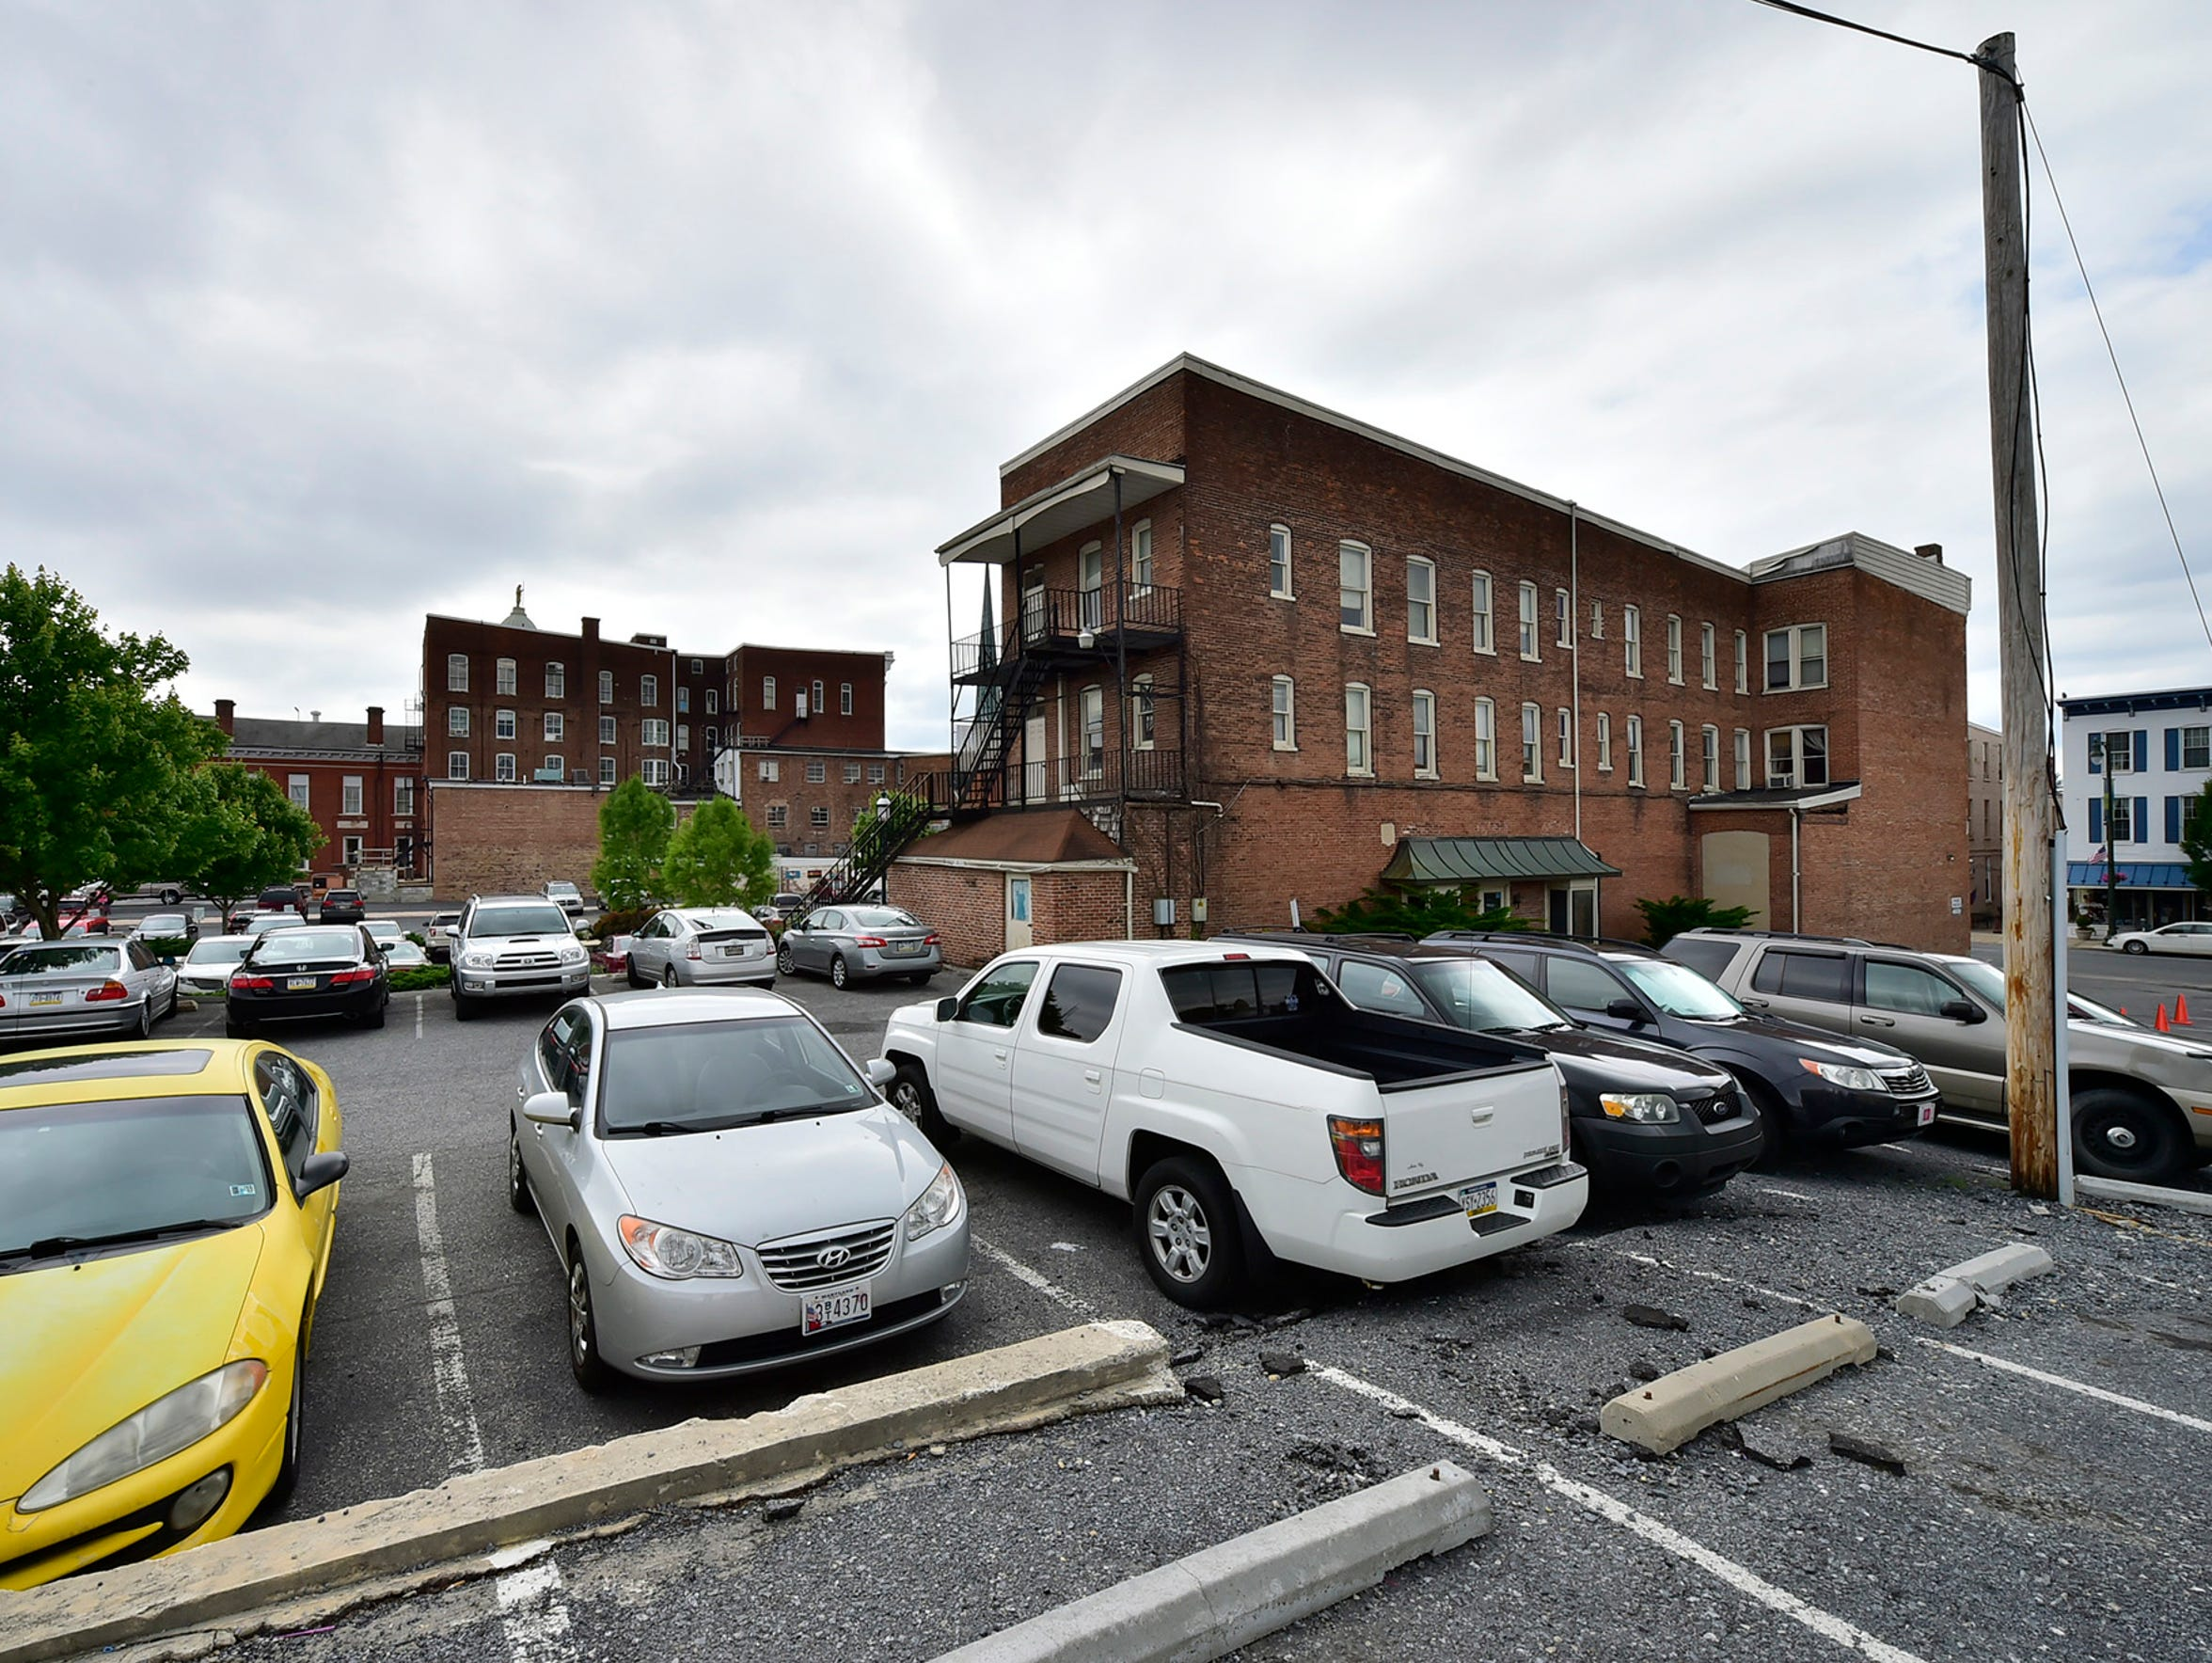 This photo shows the parking lot behind the Franklin County Courthouse complex. Part of this area will be taken up by new construction as part of the courthouse project, dramatically changing the landscape in the first block of North Main Street.